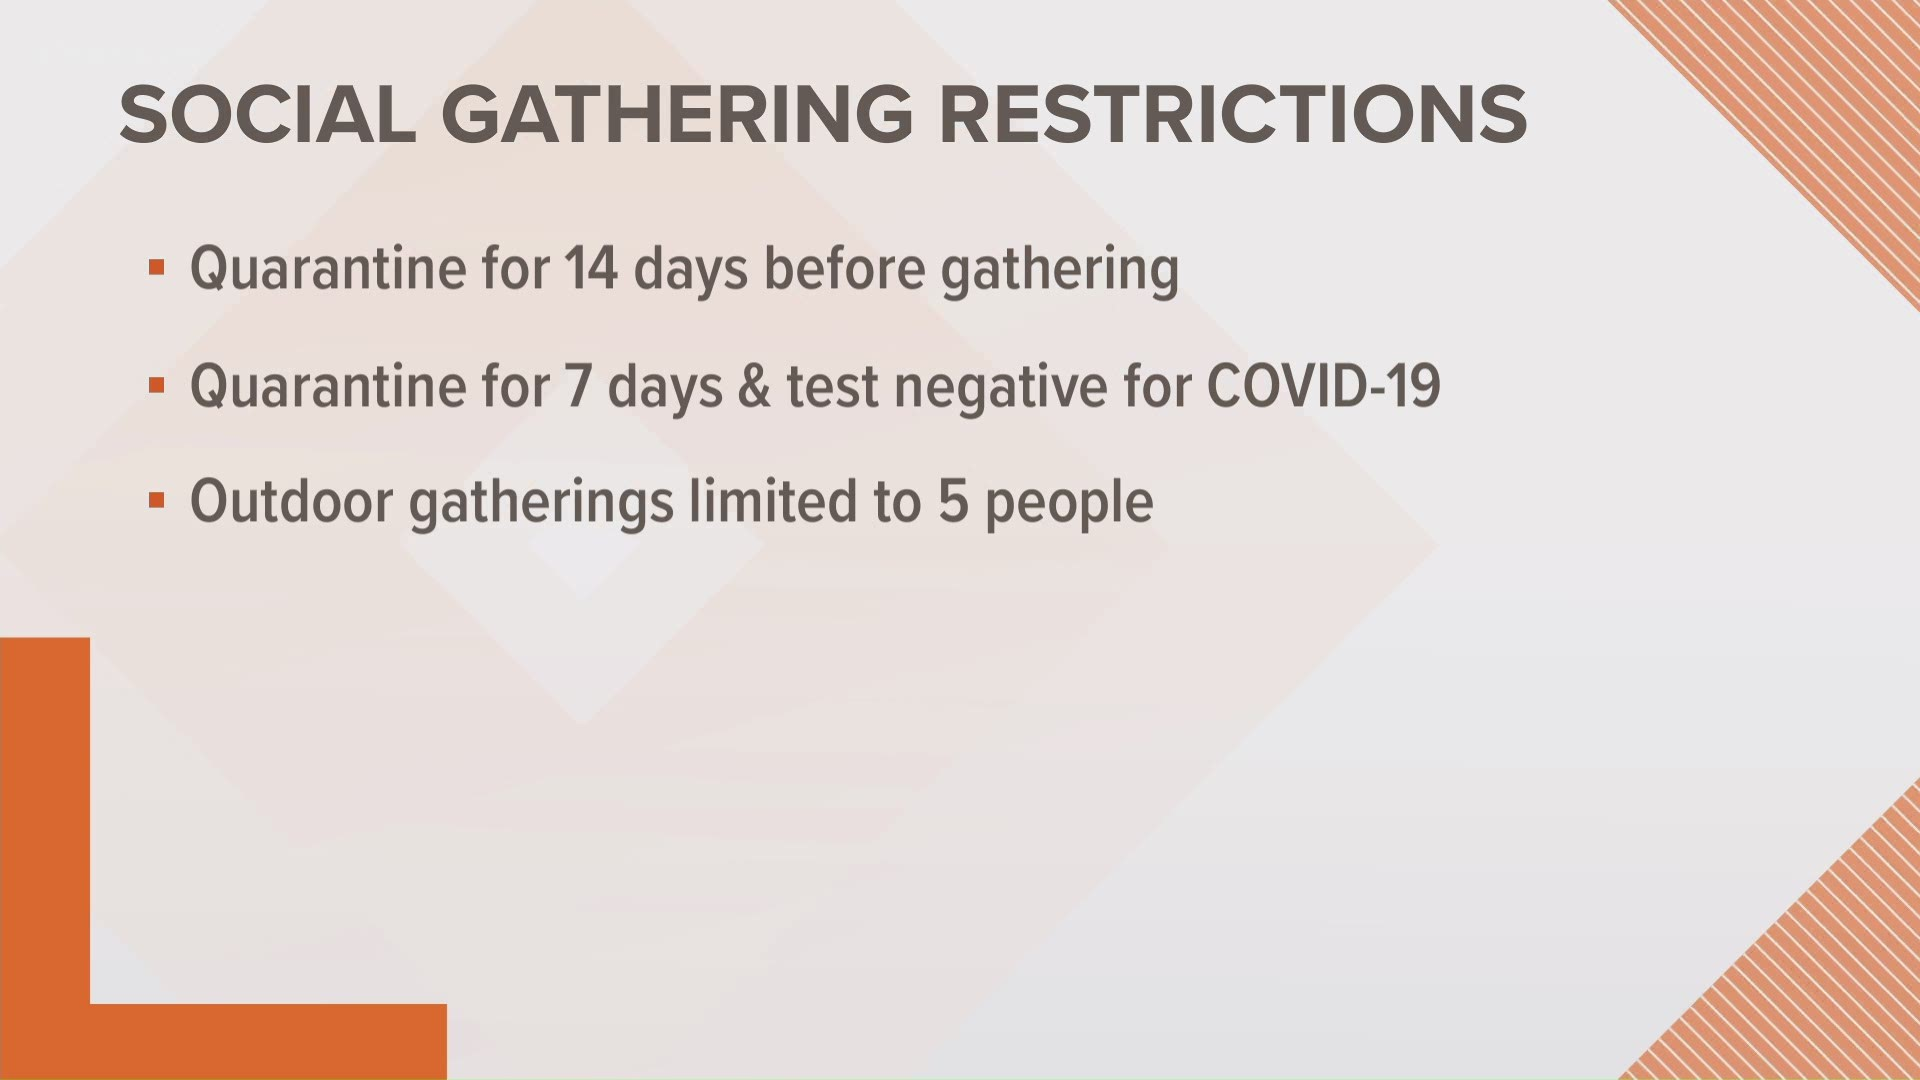 New Covid 19 Restrictions In Effect For Washington Stores Restaurants And Social Gatherings Firstcoastnews Com